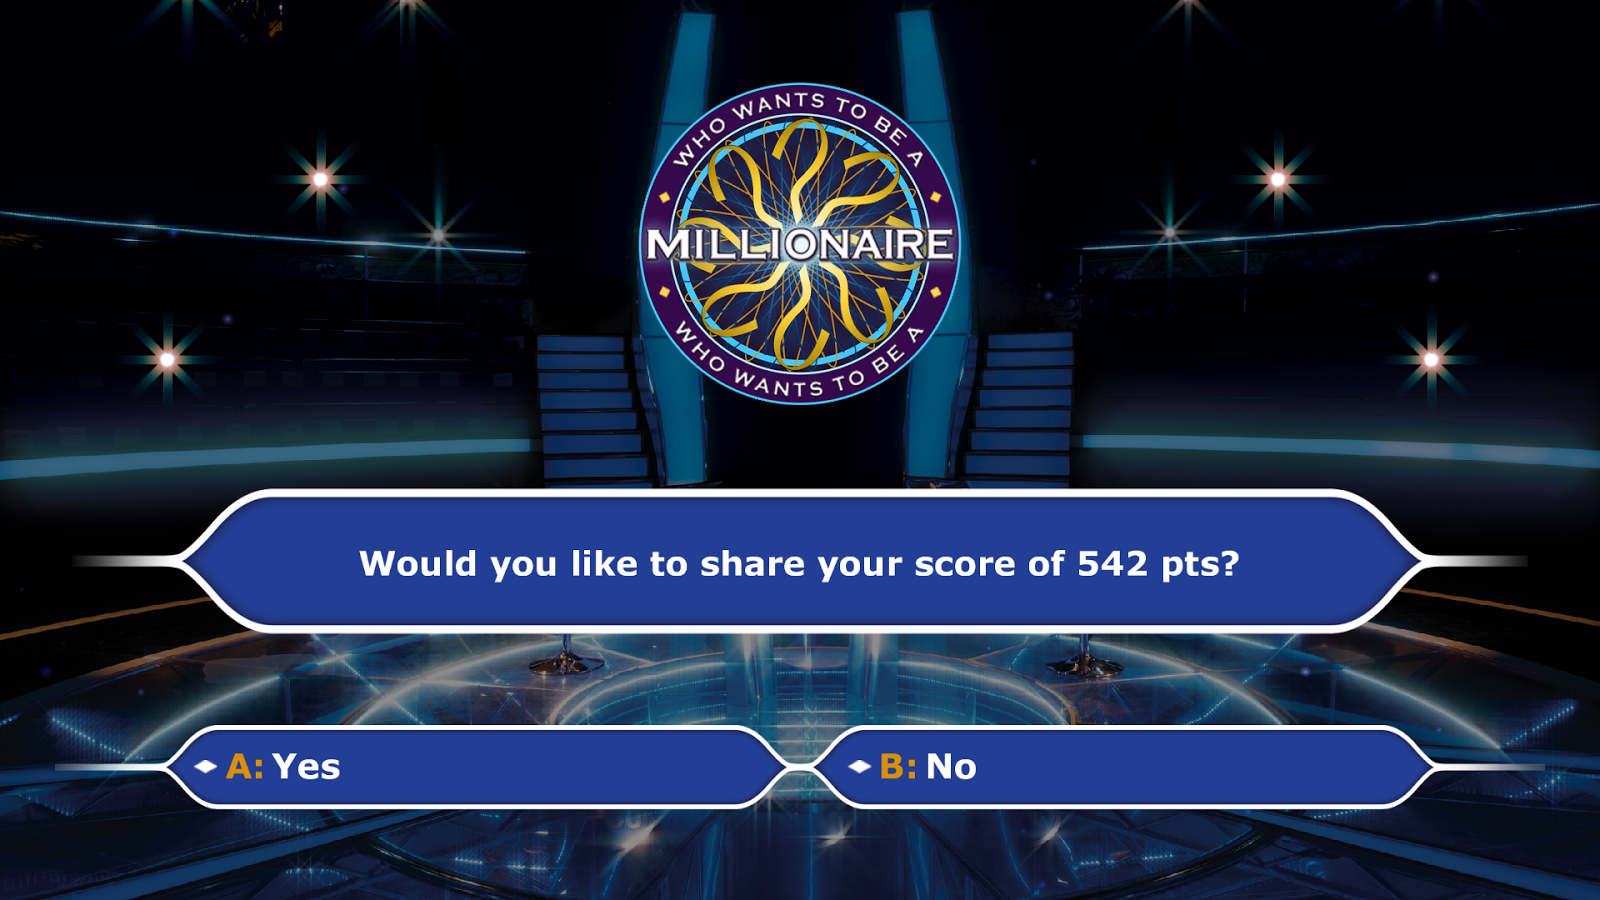 who wants to be a millionaire? - android apps on google play, Powerpoint templates